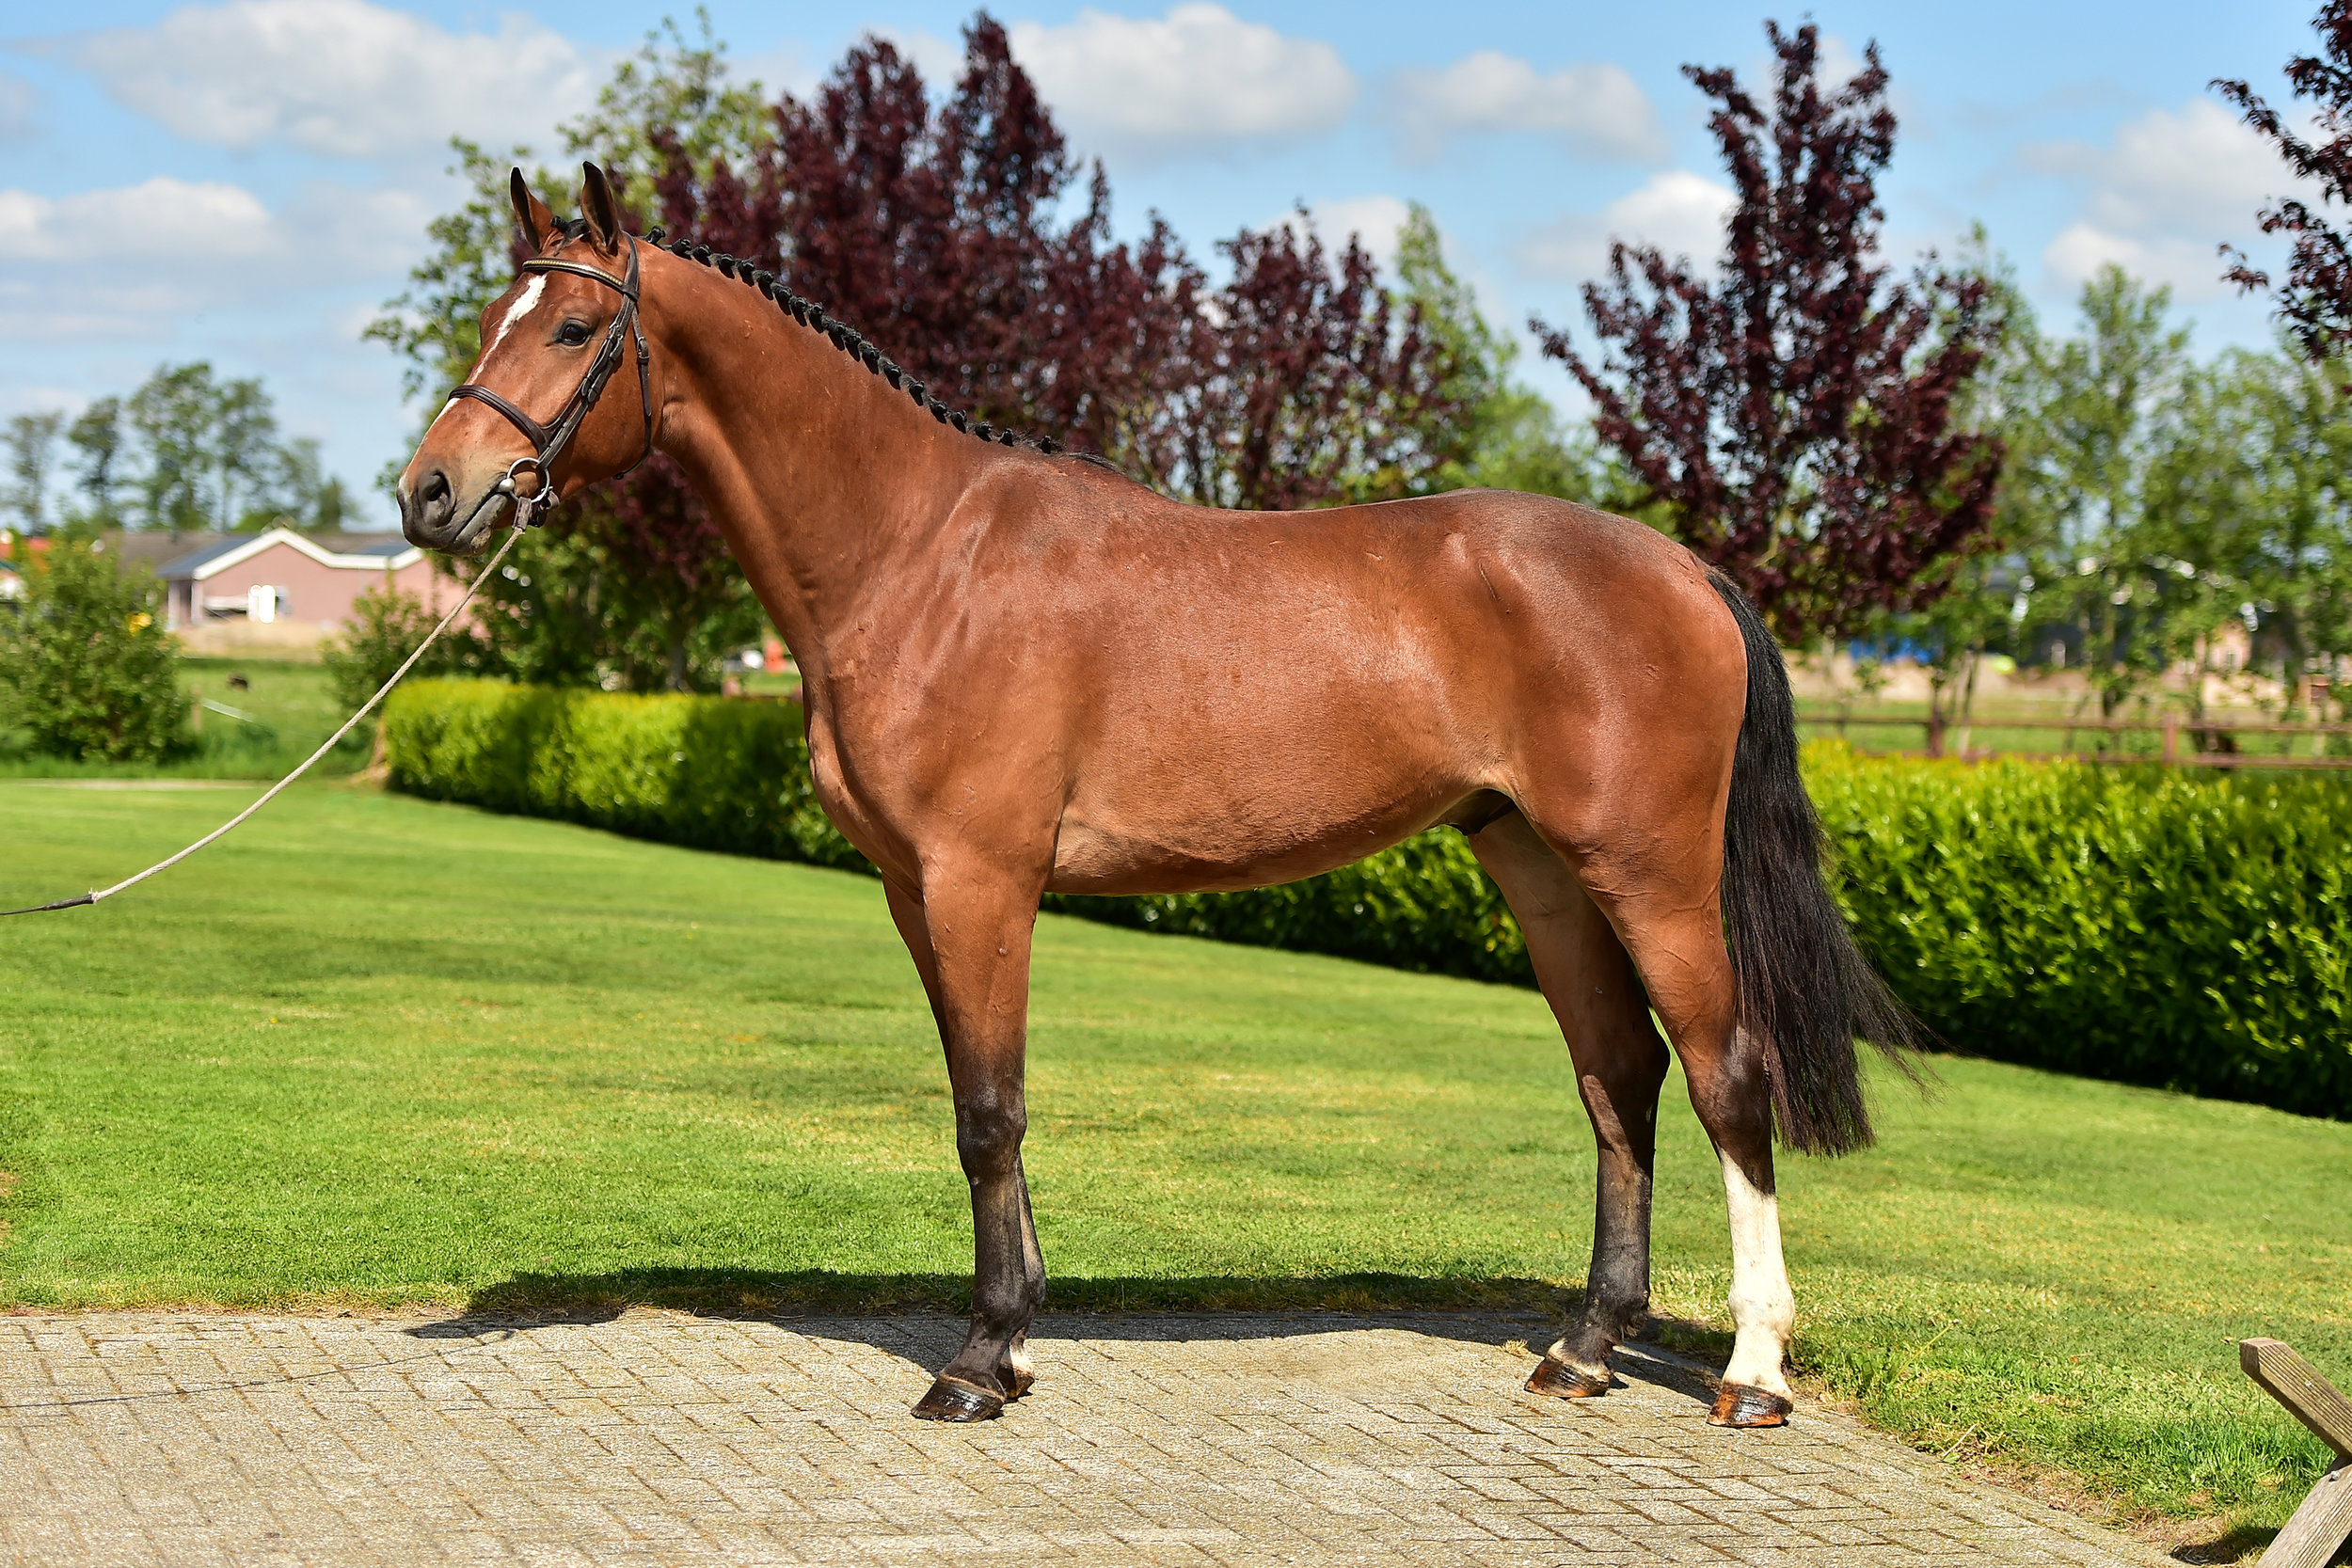 LOT 11    3YO | Height: 170cm | Gelding Homerun x Ahorn x Renville